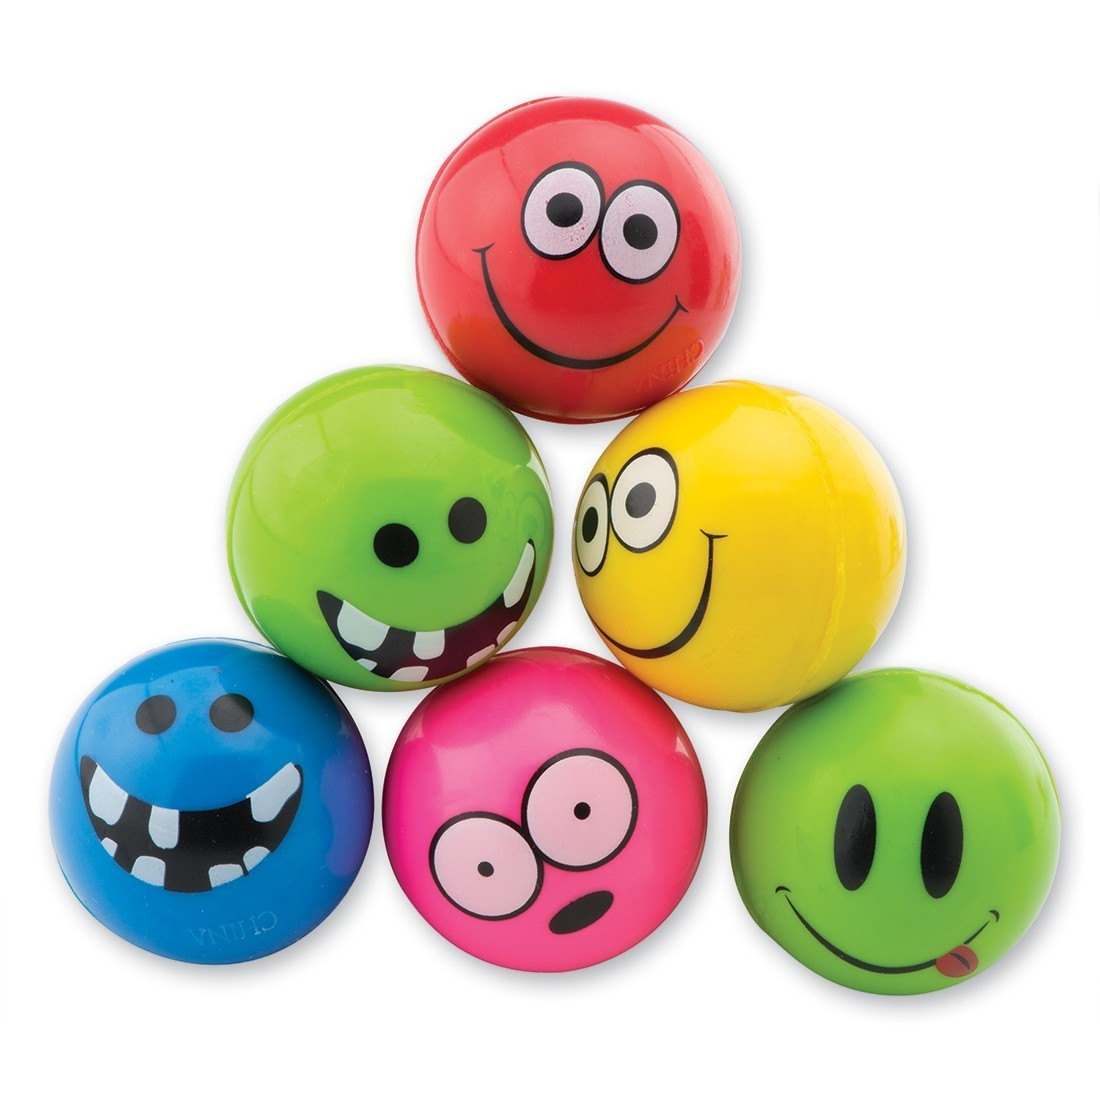 29mm Funny Smiley Face Neon Bouncing Balls [image]